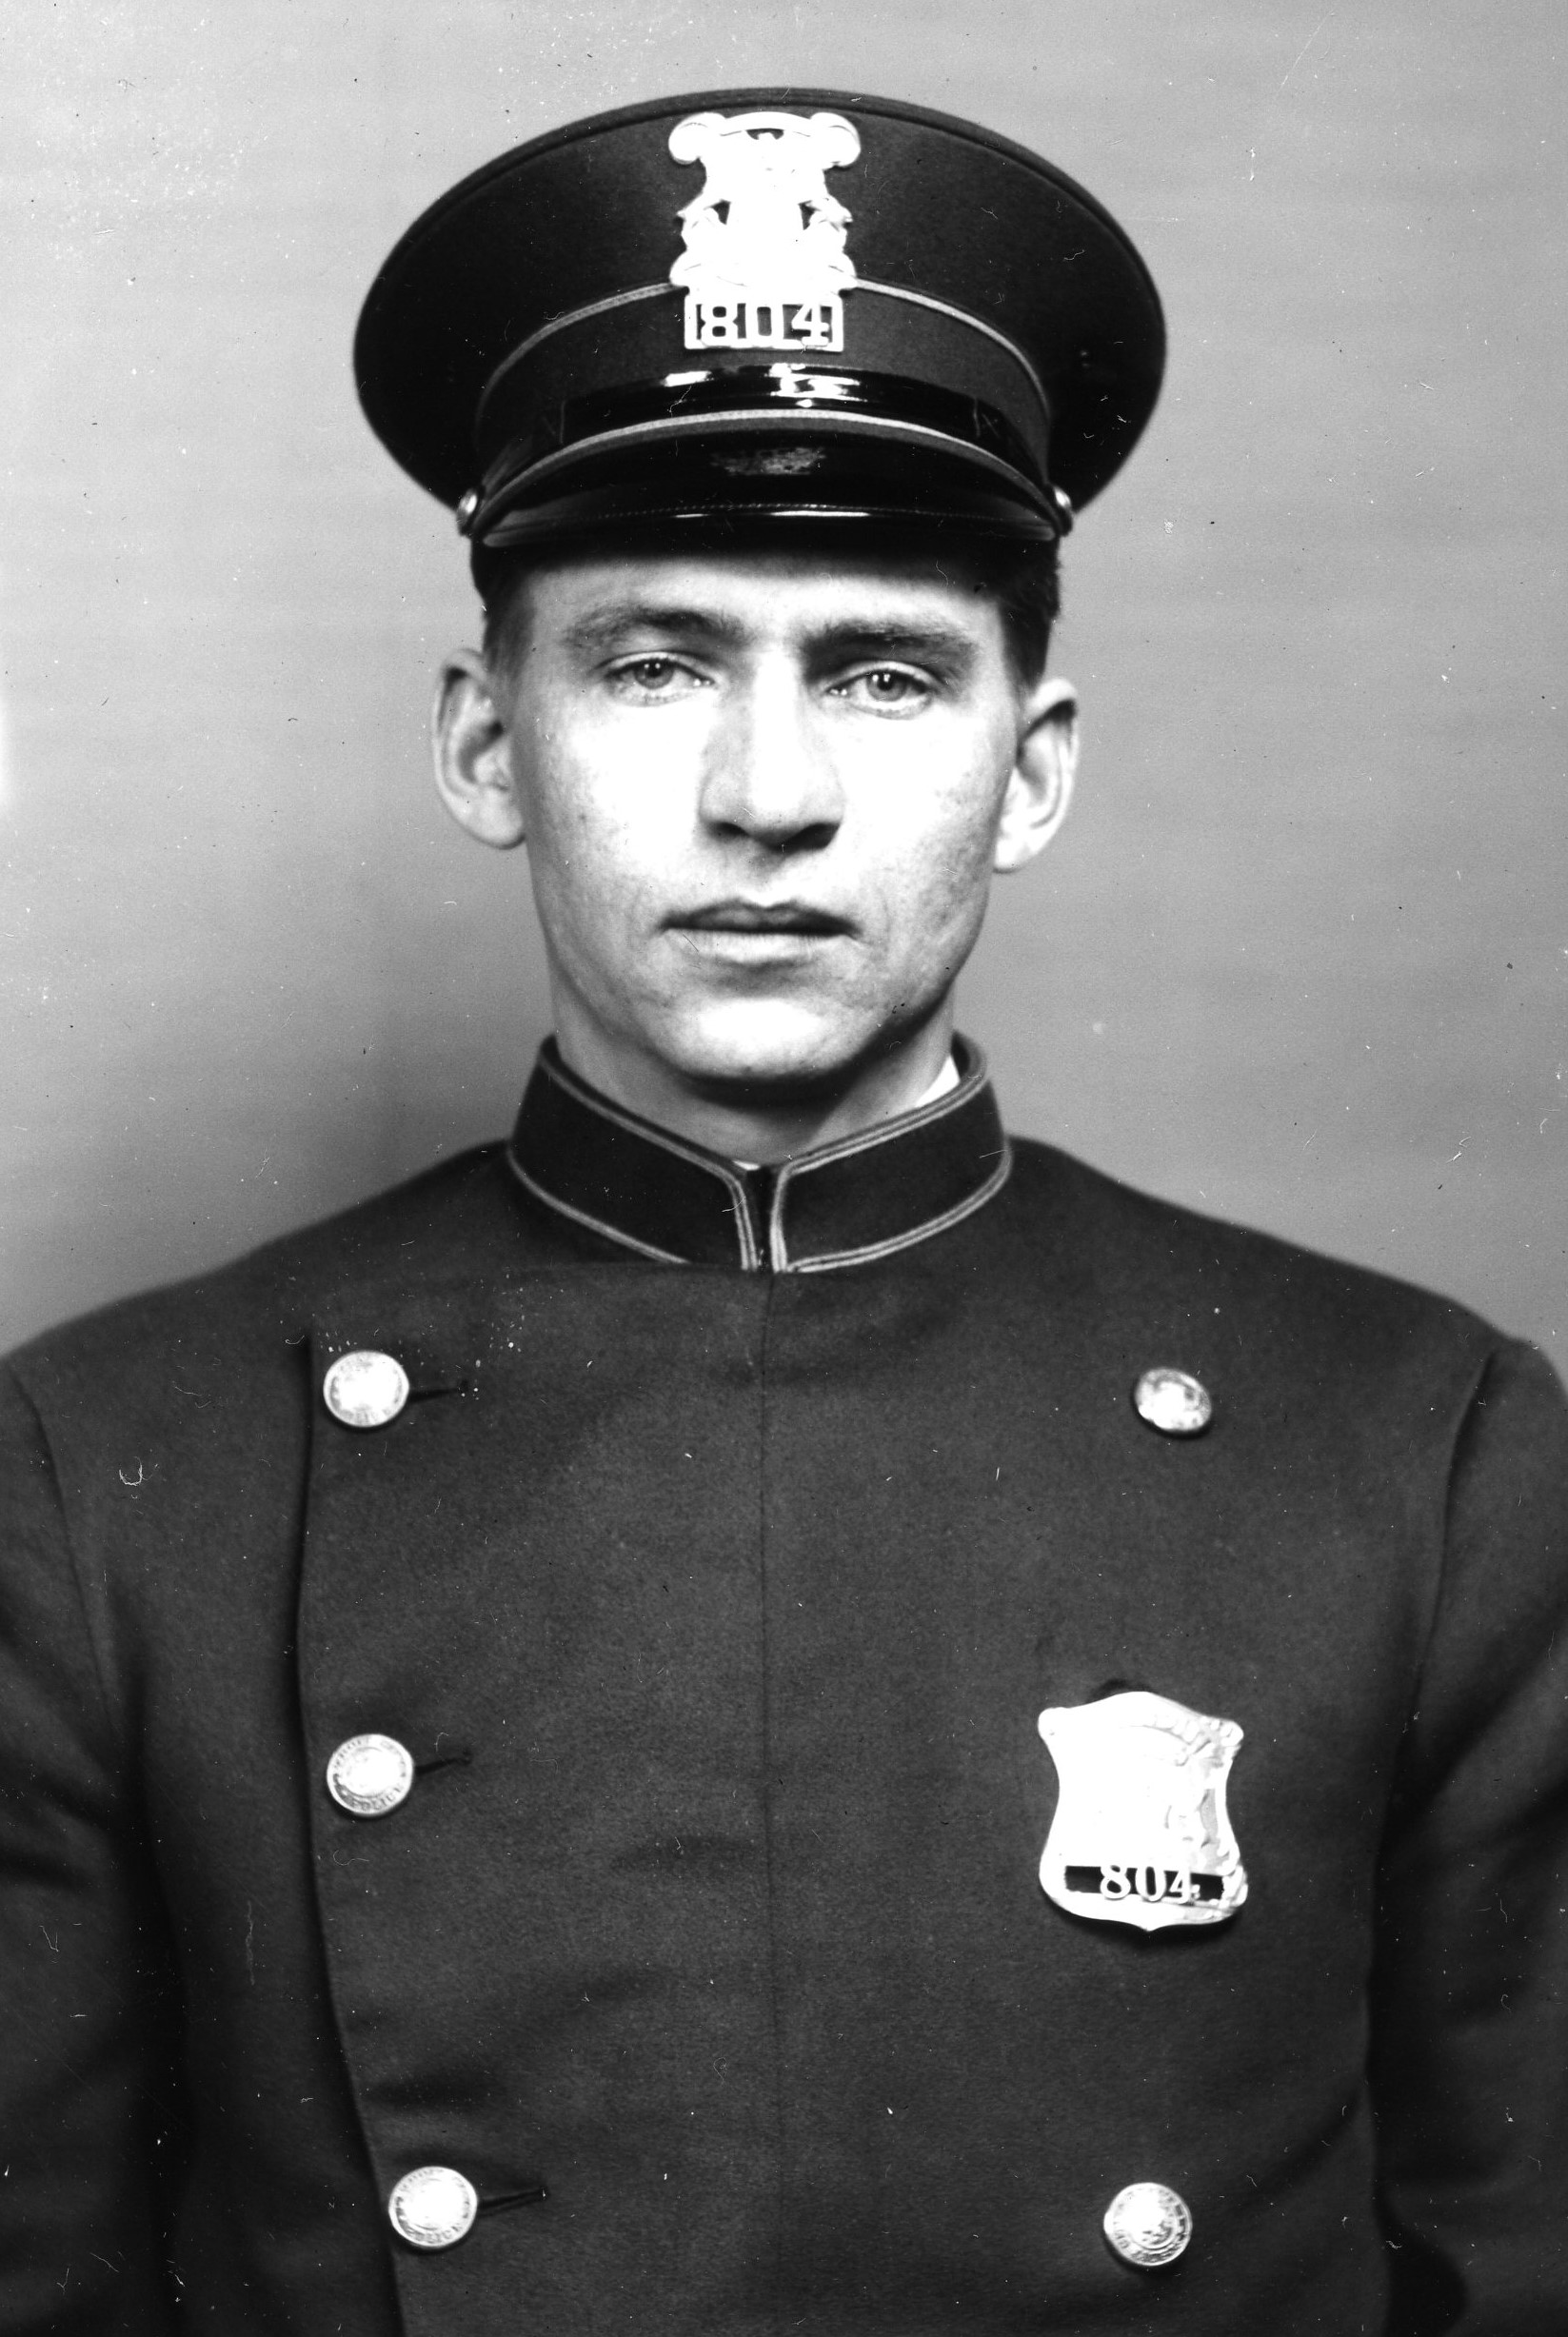 Police Officer Emil R. Schmidt | Detroit Police Department, Michigan